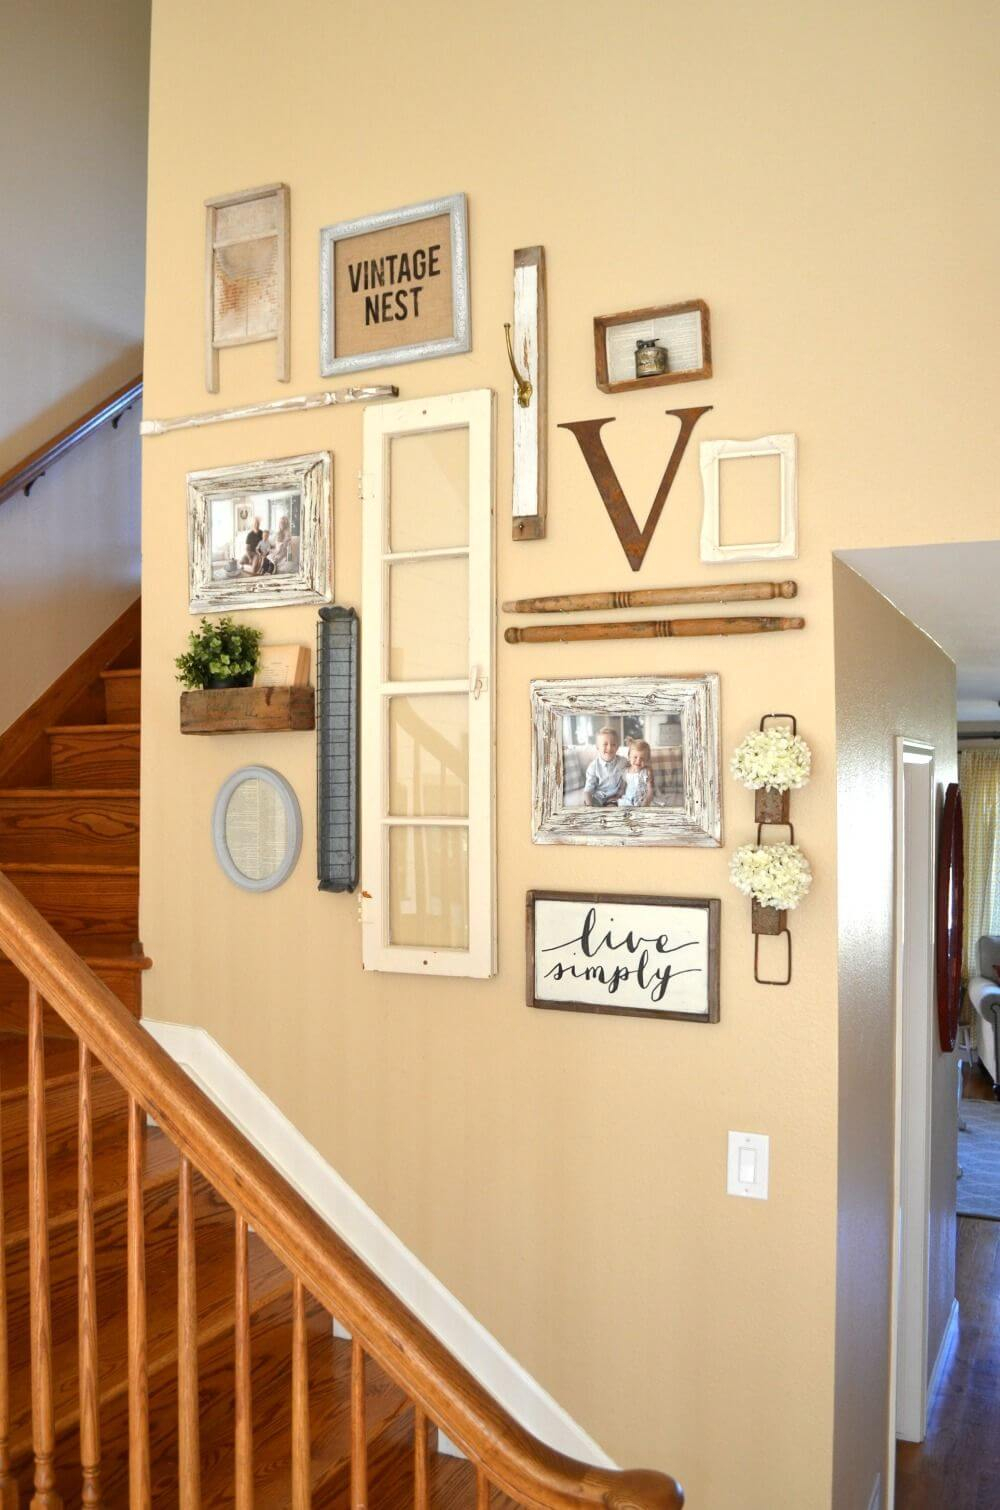 28 Best Stairway Decorating Ideas And Designs For 2019 Throughout Landing Art Wall Decor (View 22 of 30)